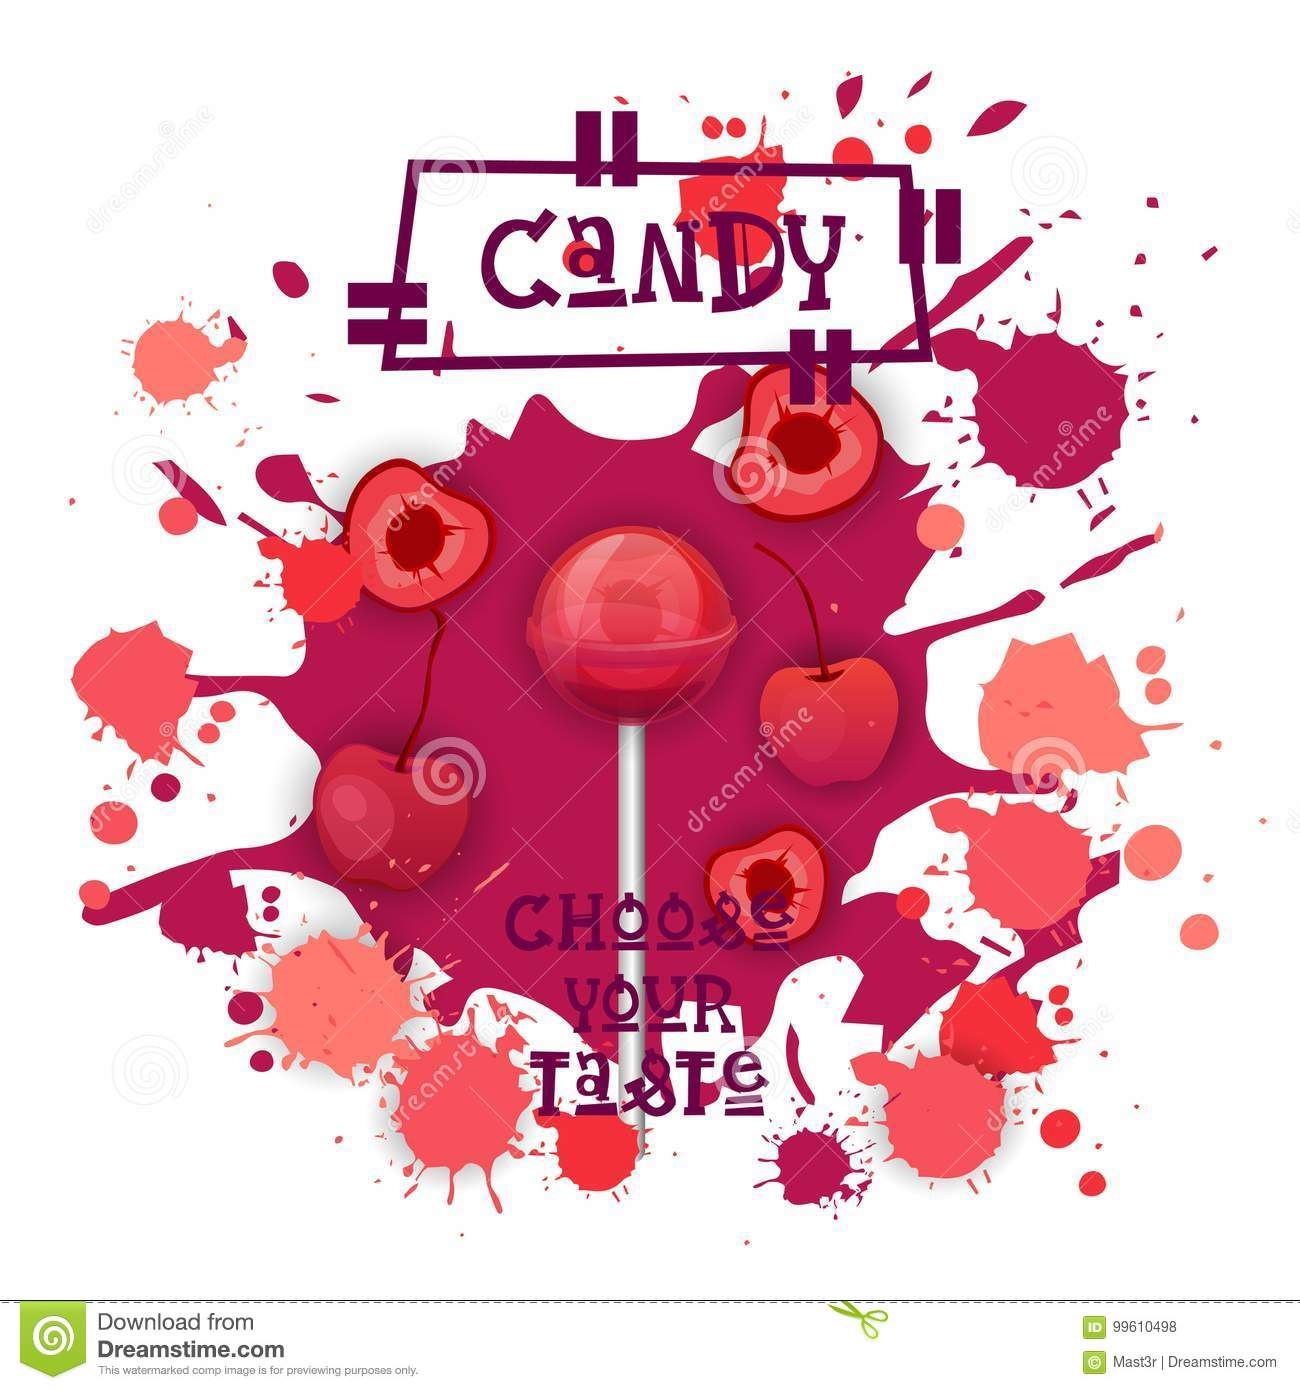 Süßigkeit Cherry Lolly Dessert Colorful Icon Choose Ihr Geschmack-Café-Plakat